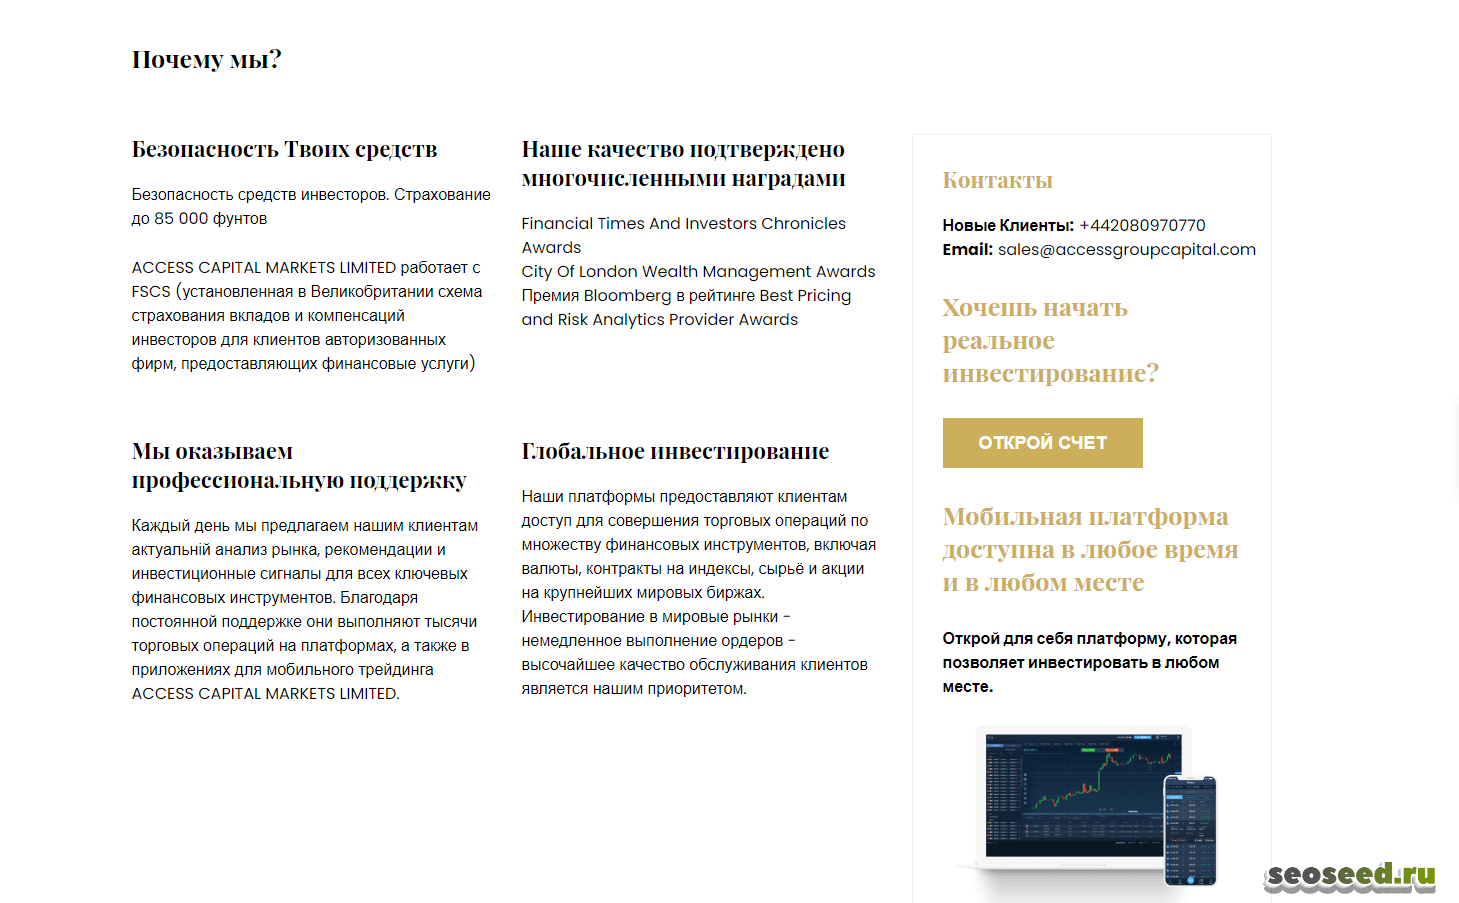 ACCESS CAPITAL MARKETS LIMITED брокер